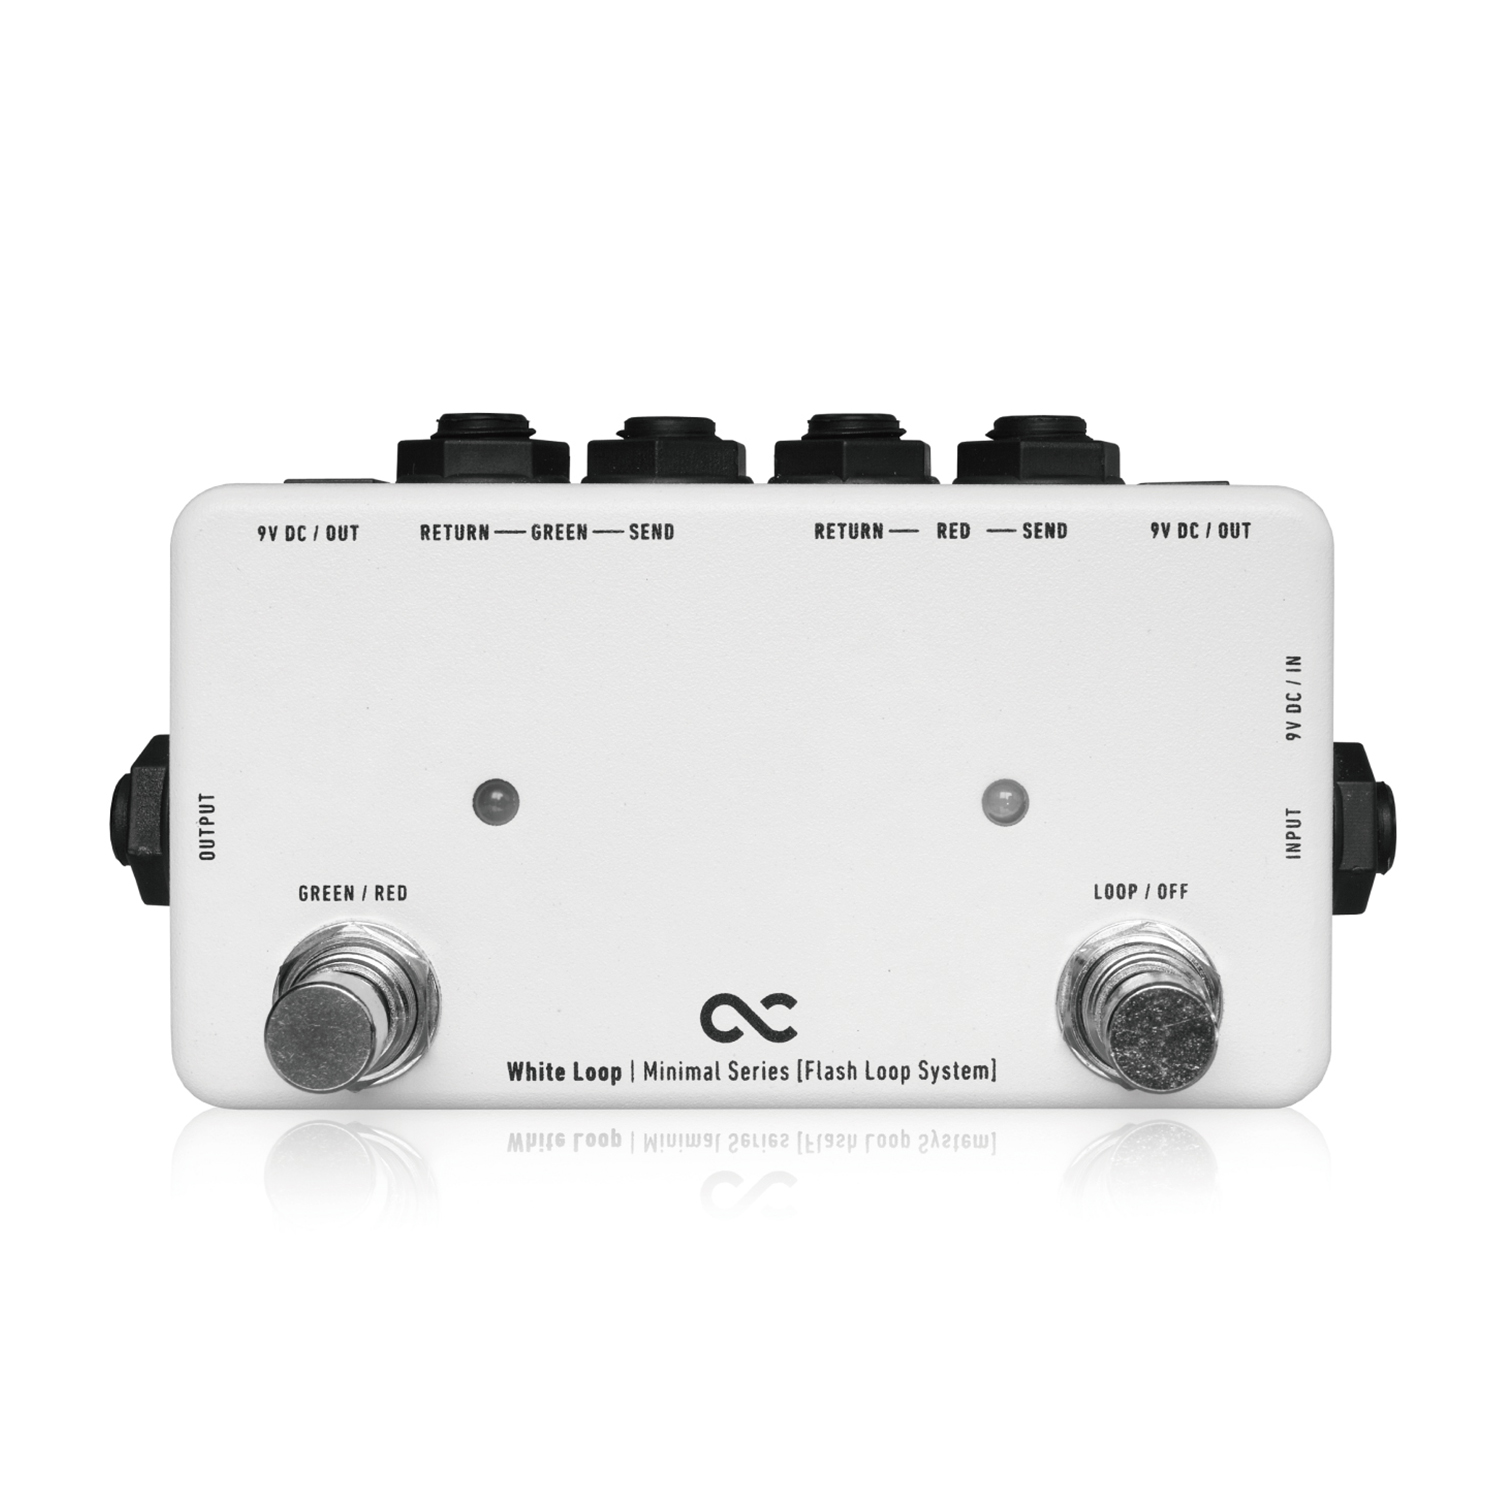 Japan One Control White Loop Guitar Effect Pedal Two Loop Line Selector Switching Minimal Series True Bypass DC Outs Flash Loop japan one control bjf little copper chorus guitar effect pedal